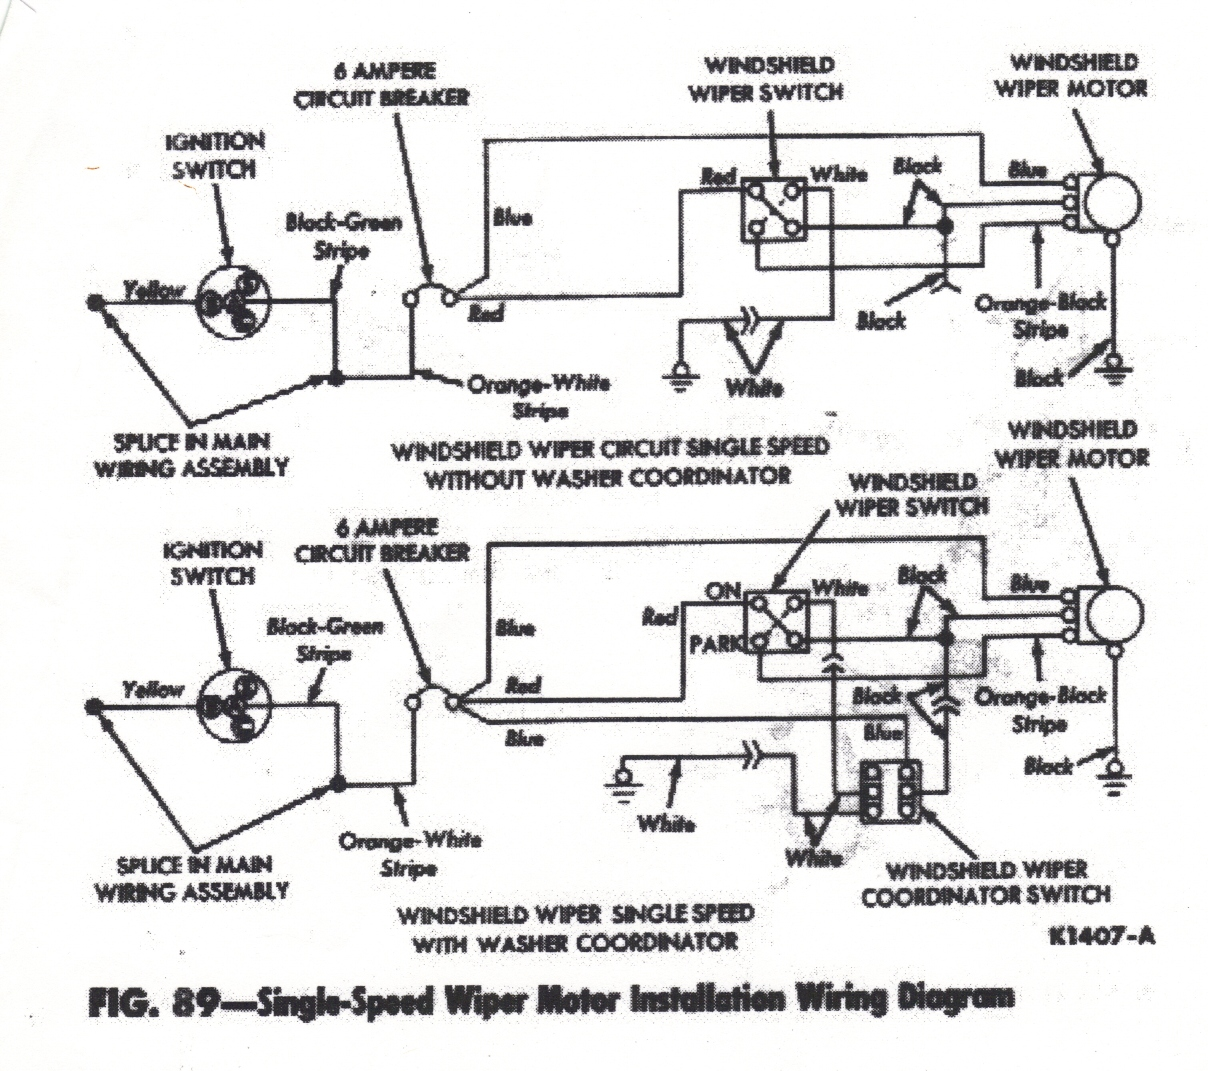 Windshield Wiper Schematic Manual e books